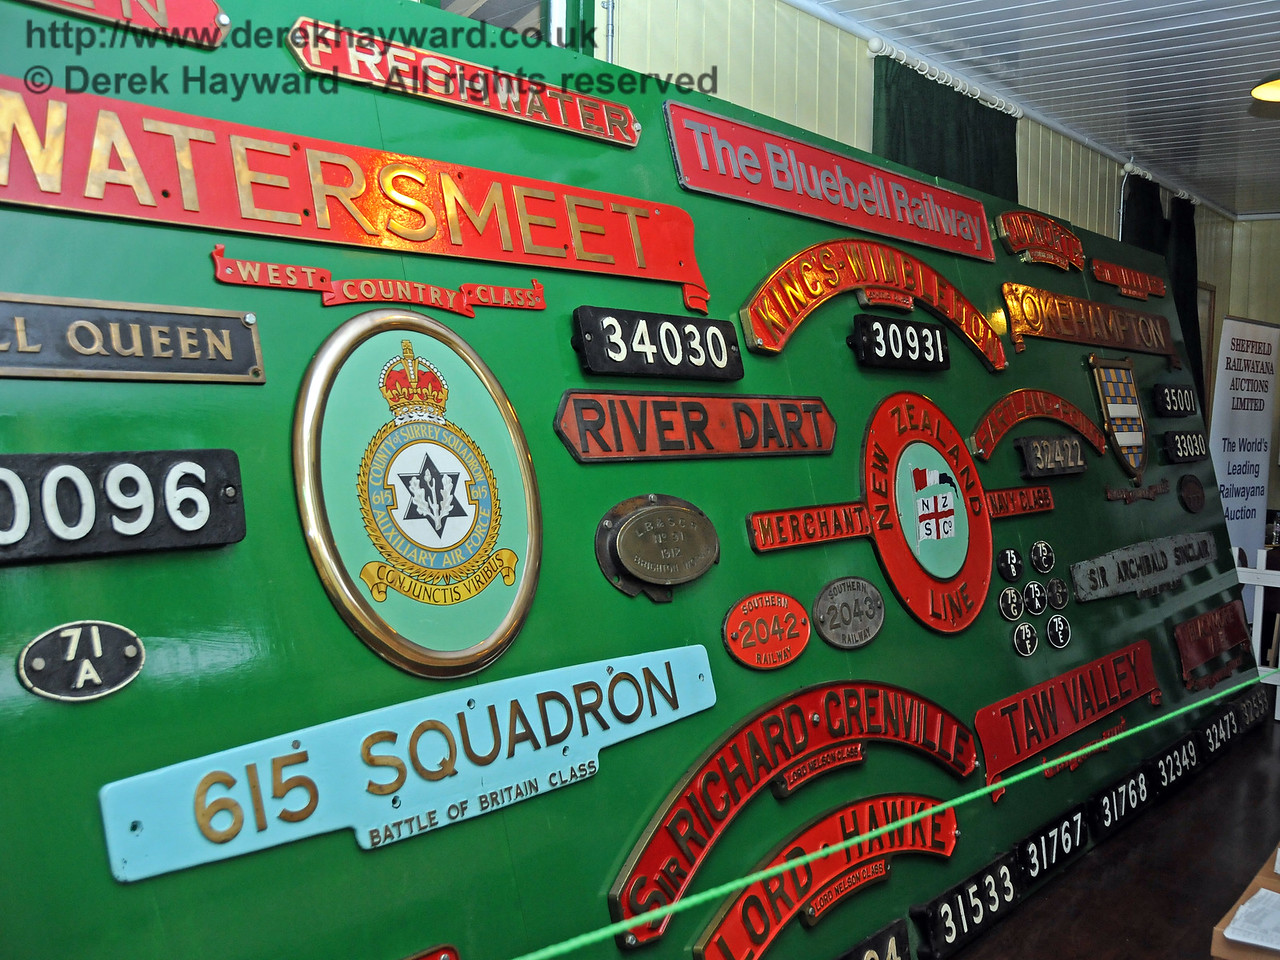 The display of locomotive nameplates at Horsted Keynes. 06.08.2010  3670